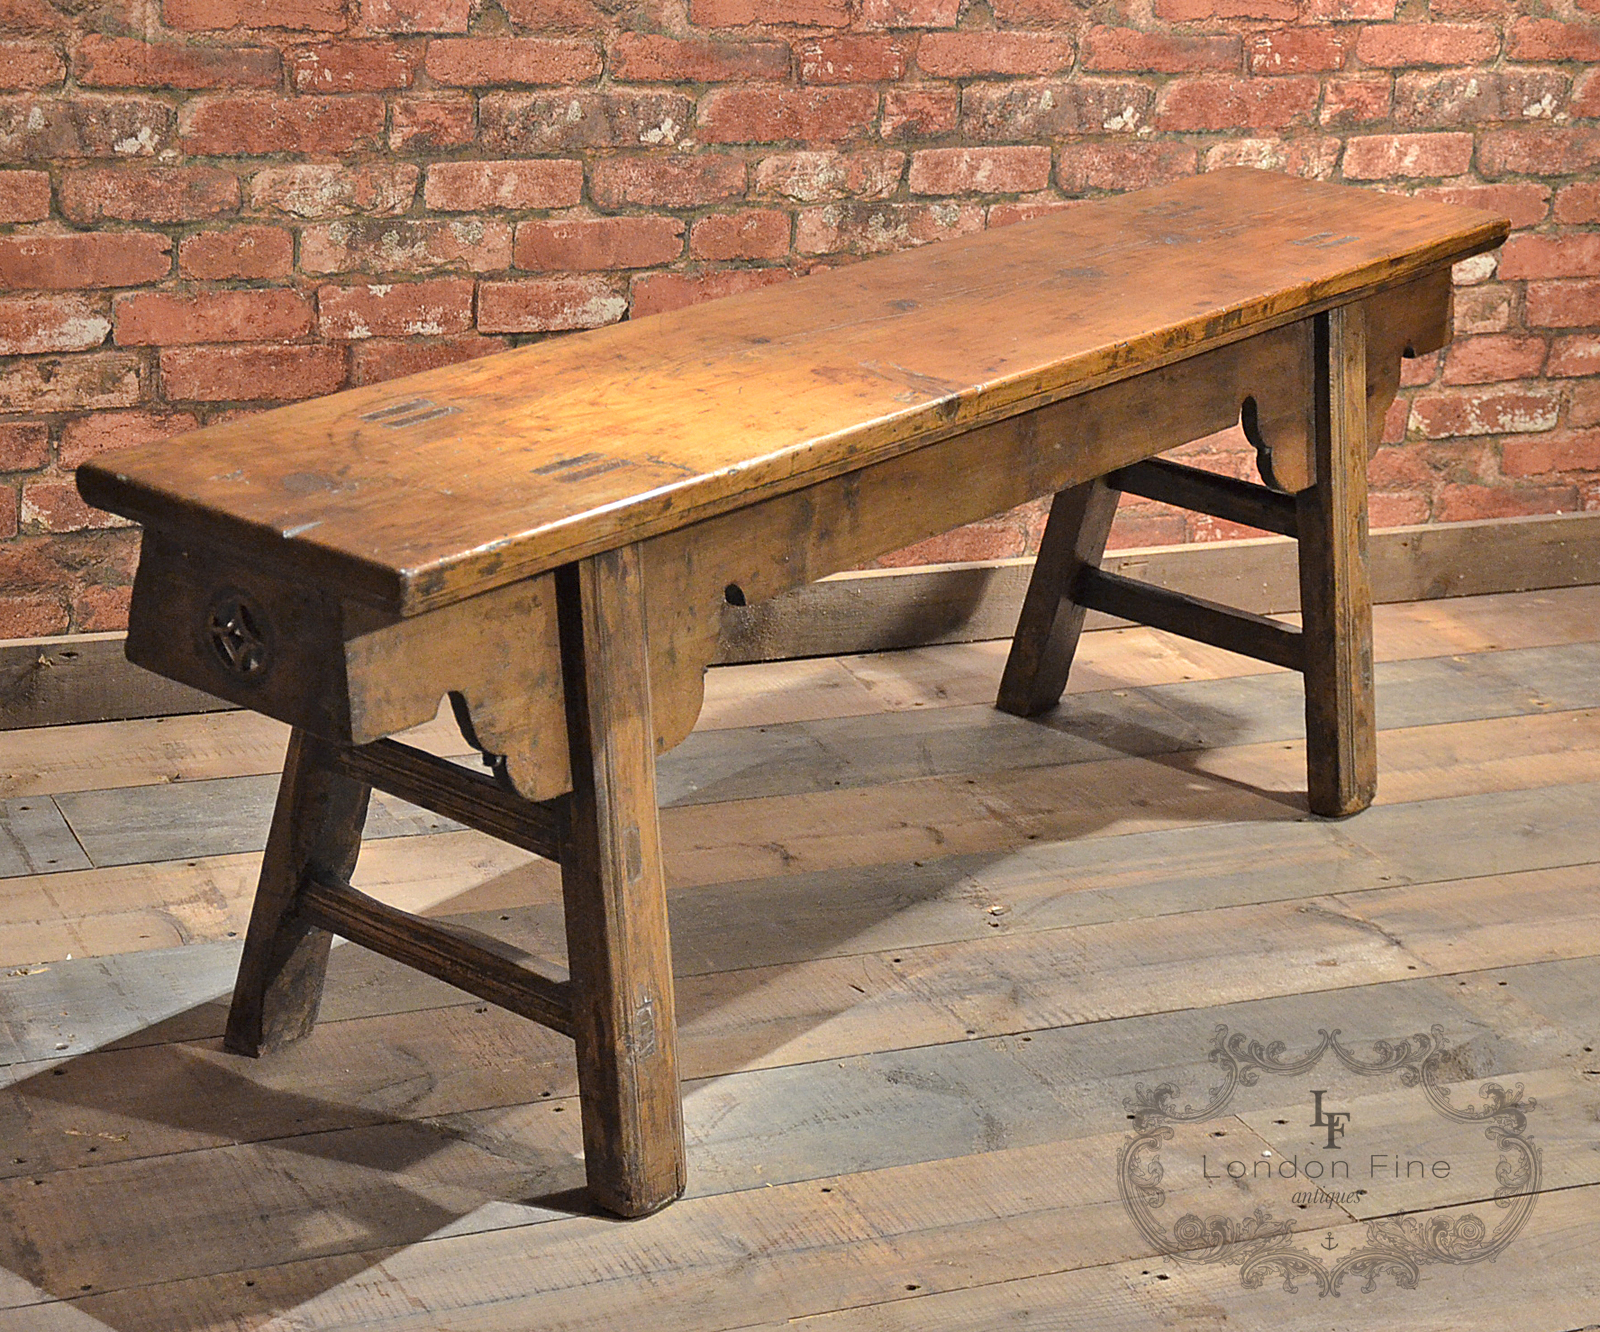 Antique Chinese Elm Gate Bench, Qing Dynasty c.1800 Old, Long Hall ...